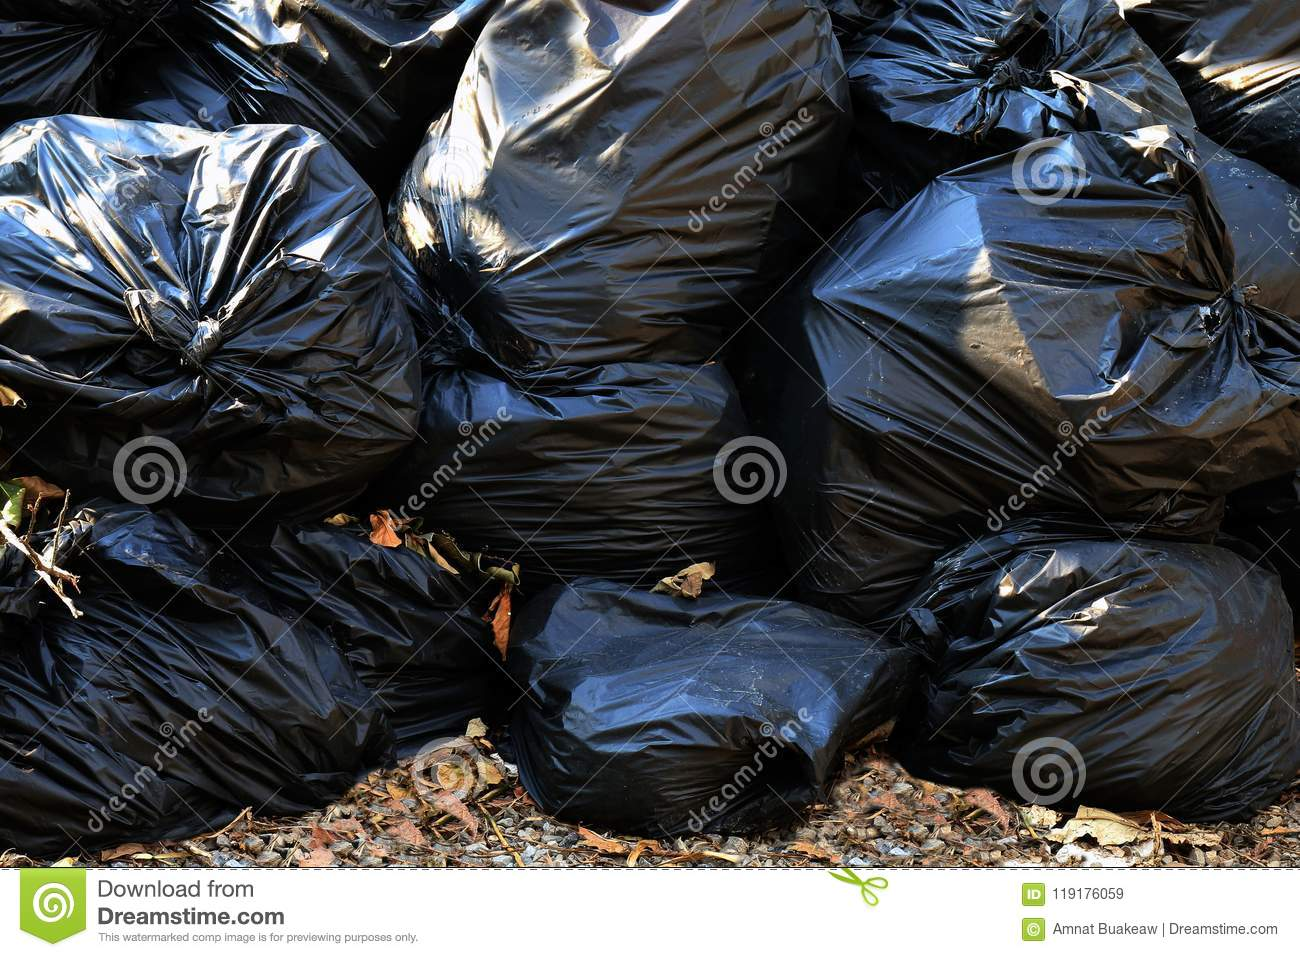 Pile waste plastic bags many garbage trash closeup for background, pile of garbage plastic black, pollution trash plastic waste an